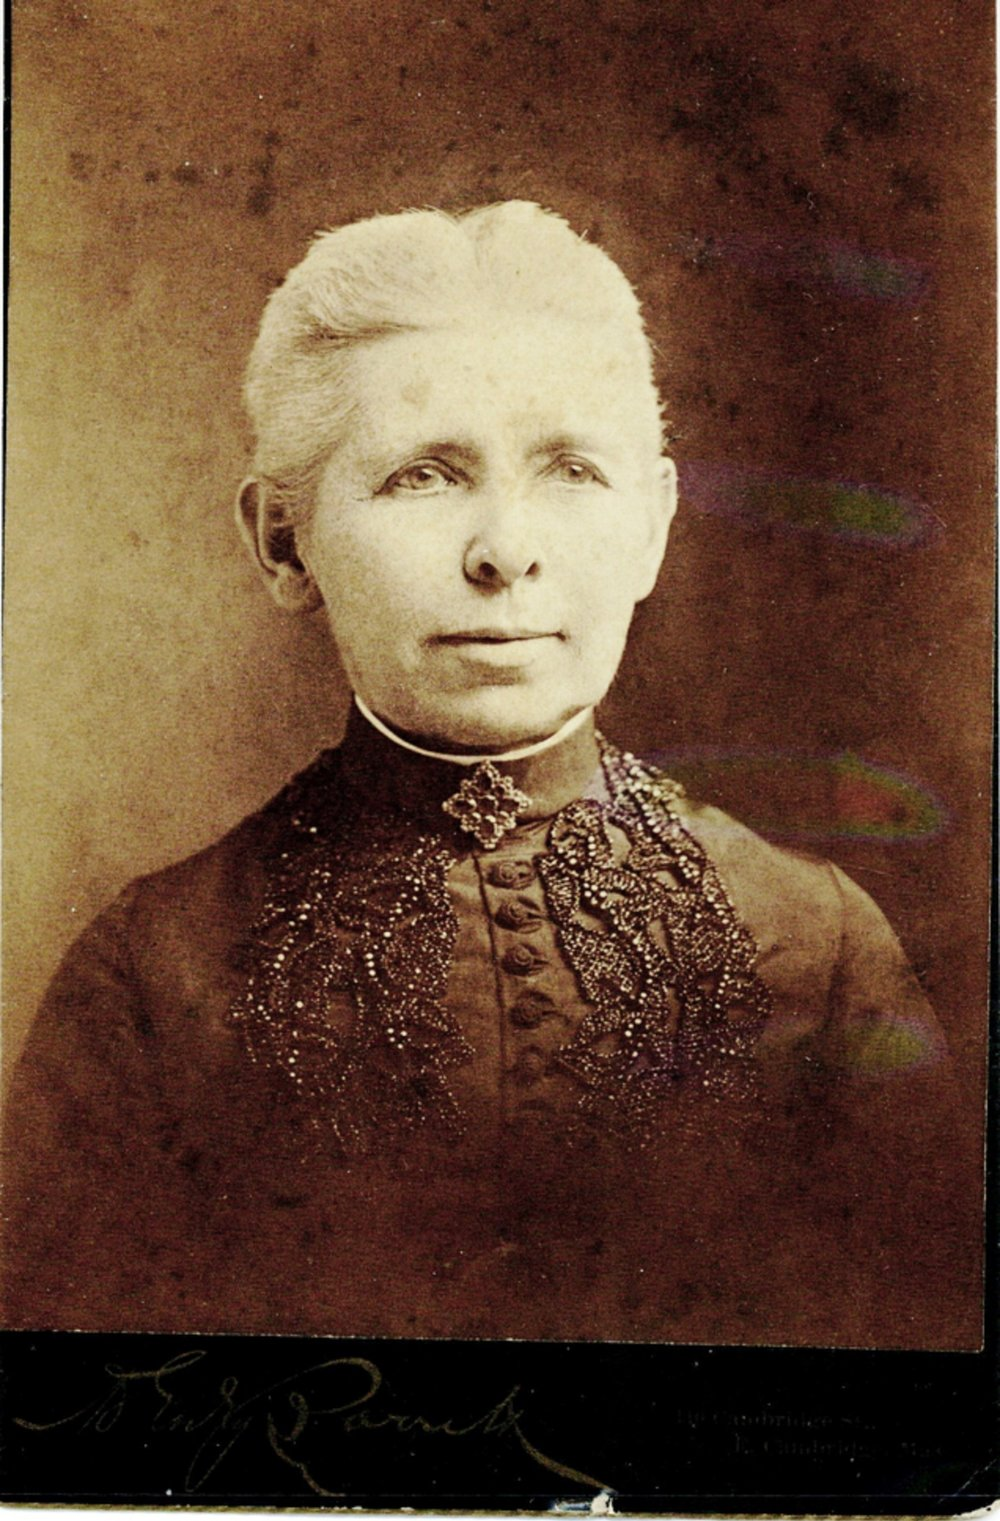 Augusta Cheney was Natick's leader in the pursuit of women's rights in the 19th century. She was a suffragette who had a nationwide reputation.  Click here for more details.